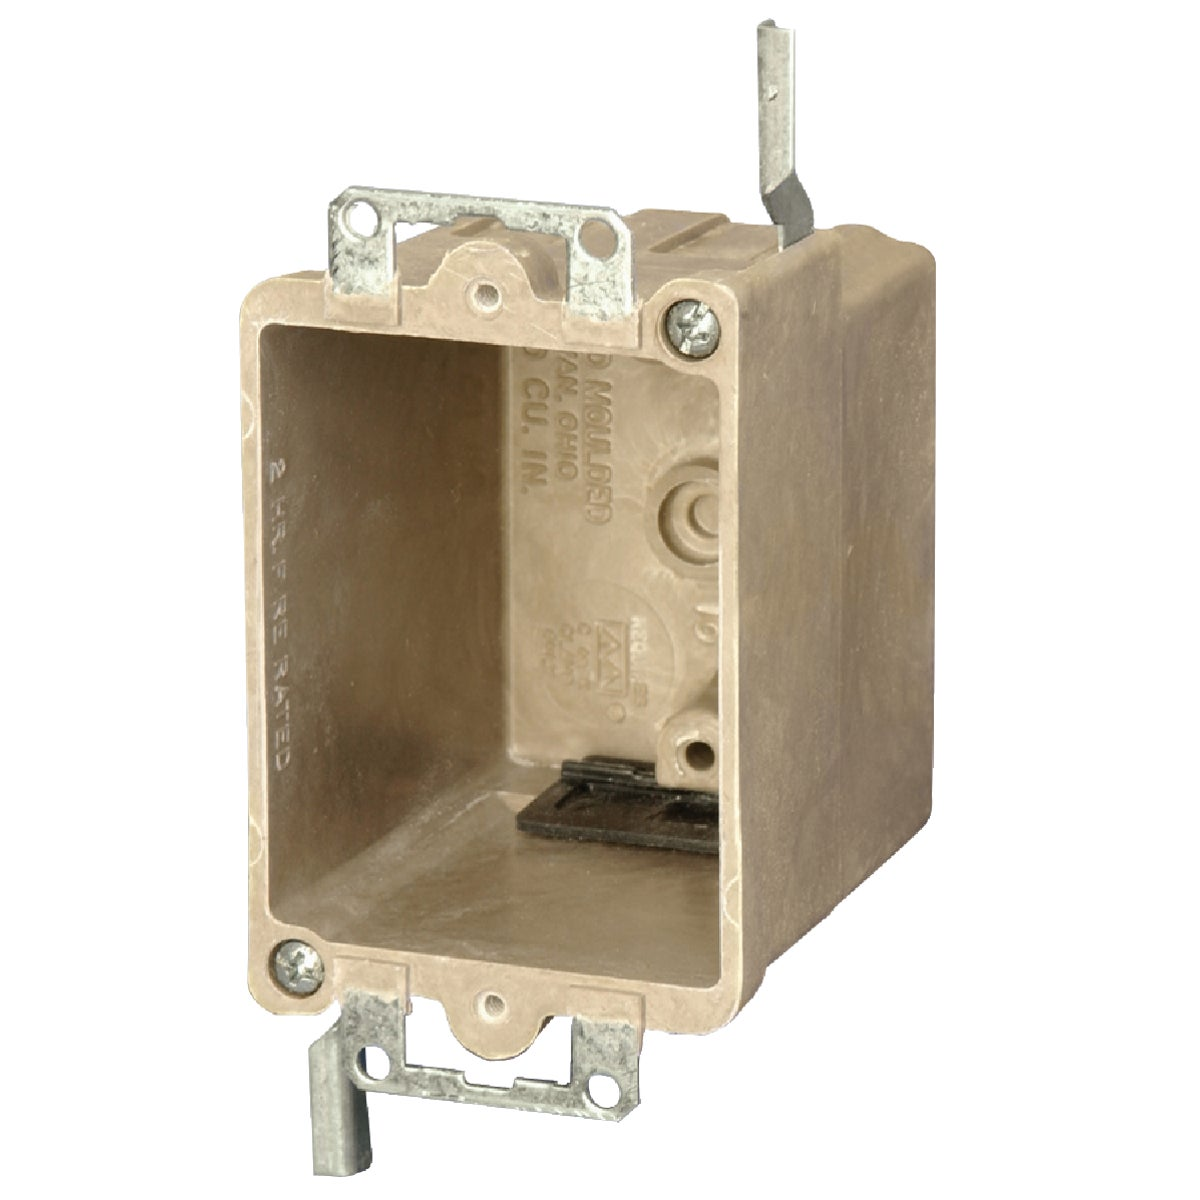 FIBERGLASS SWITCH BOX - 9363-EWK by Allied Moulded